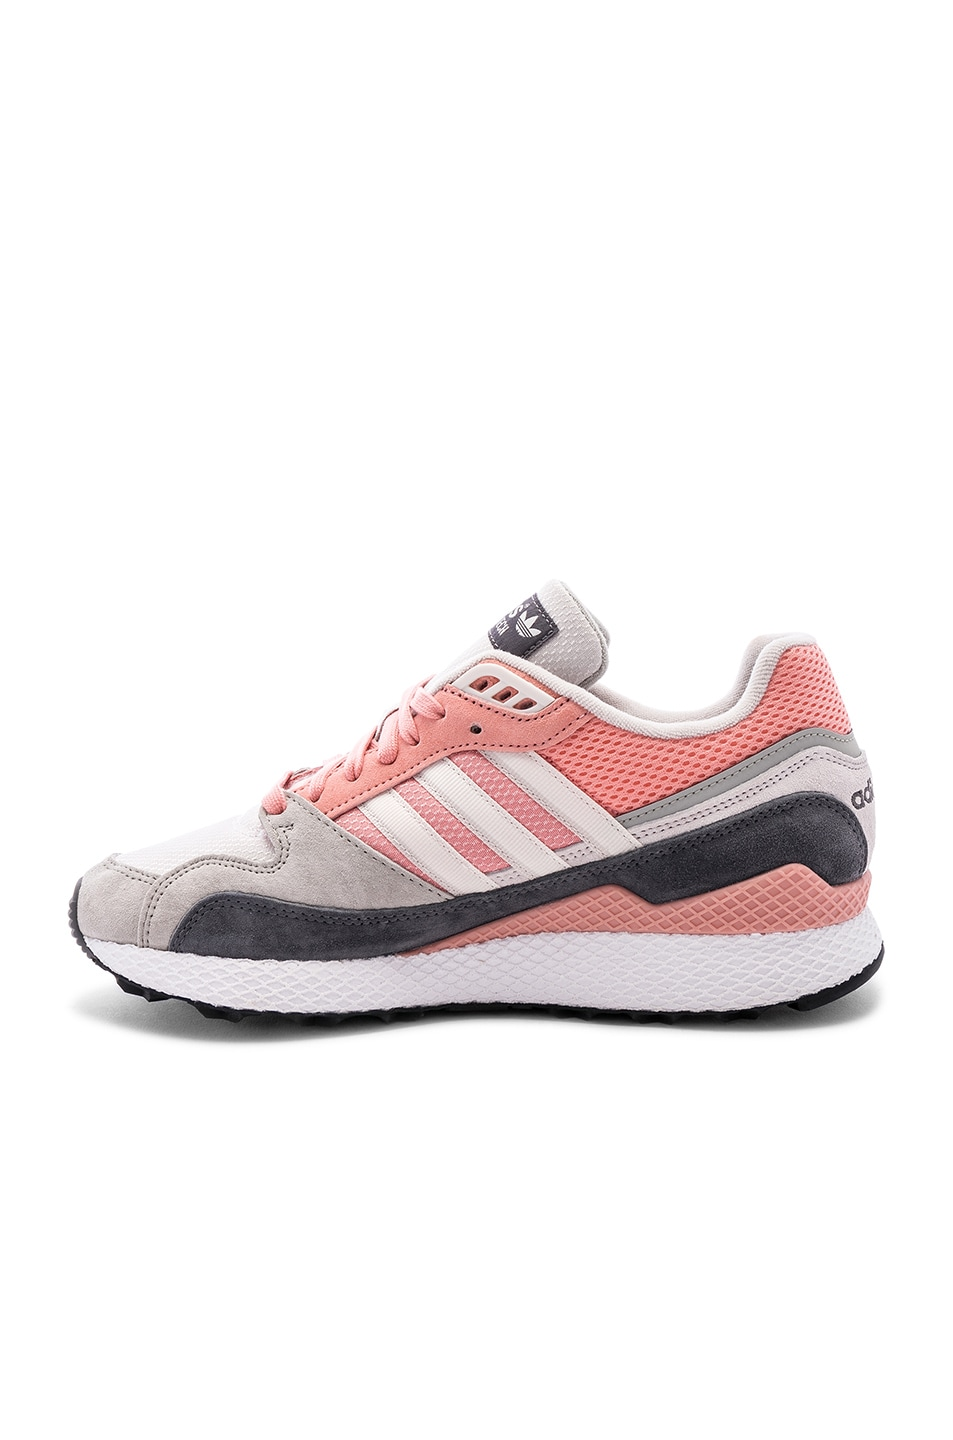 Image 5 of adidas Originals Oregon Ultra Tech in Trace Pink & Crystal White & Black